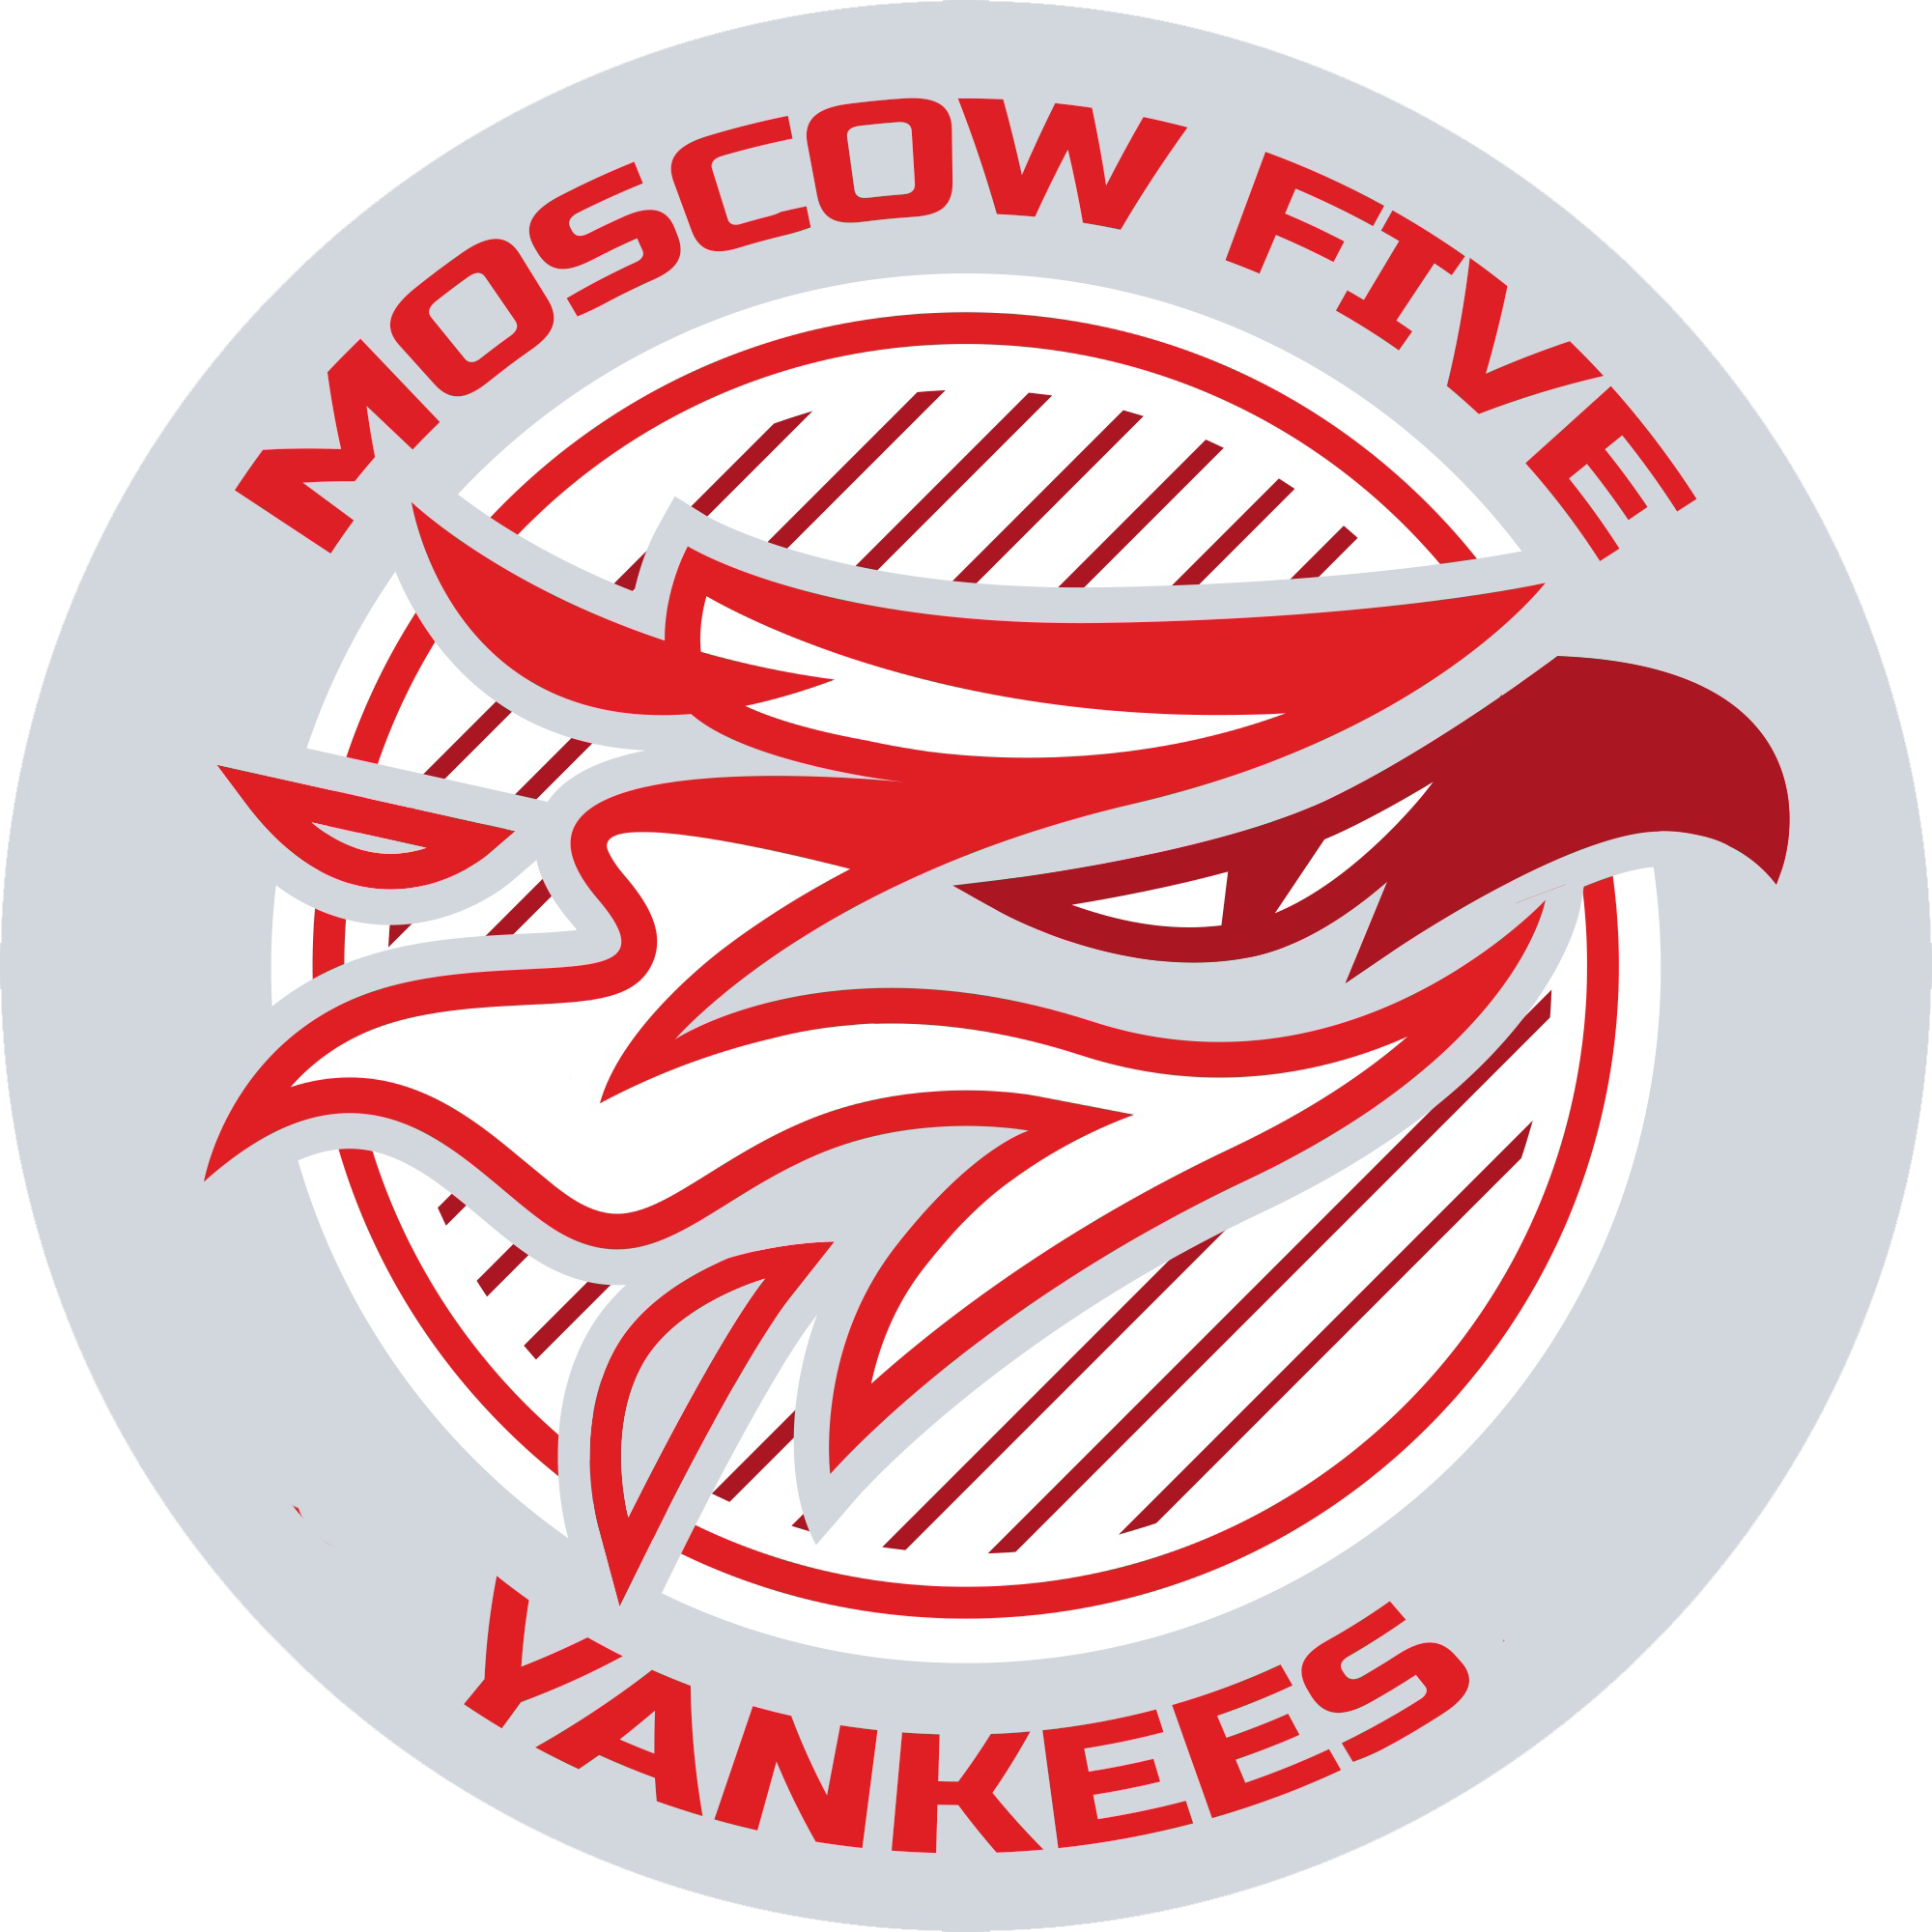 Moscow Five Yankees